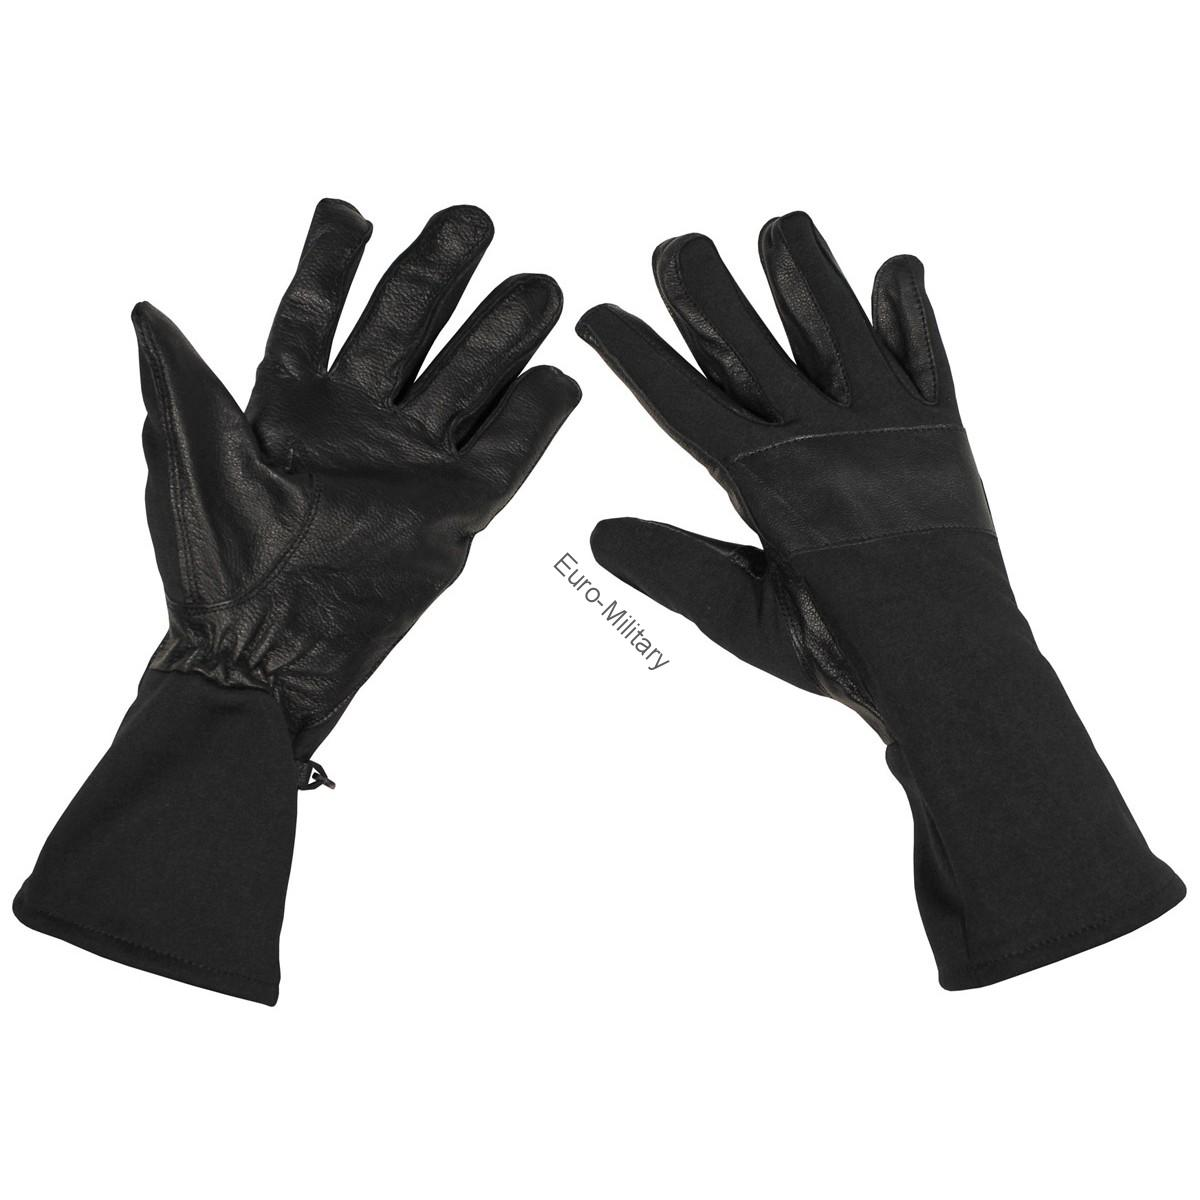 BW German Army Combat Gloves Long Gaiter Leather Trim - Black